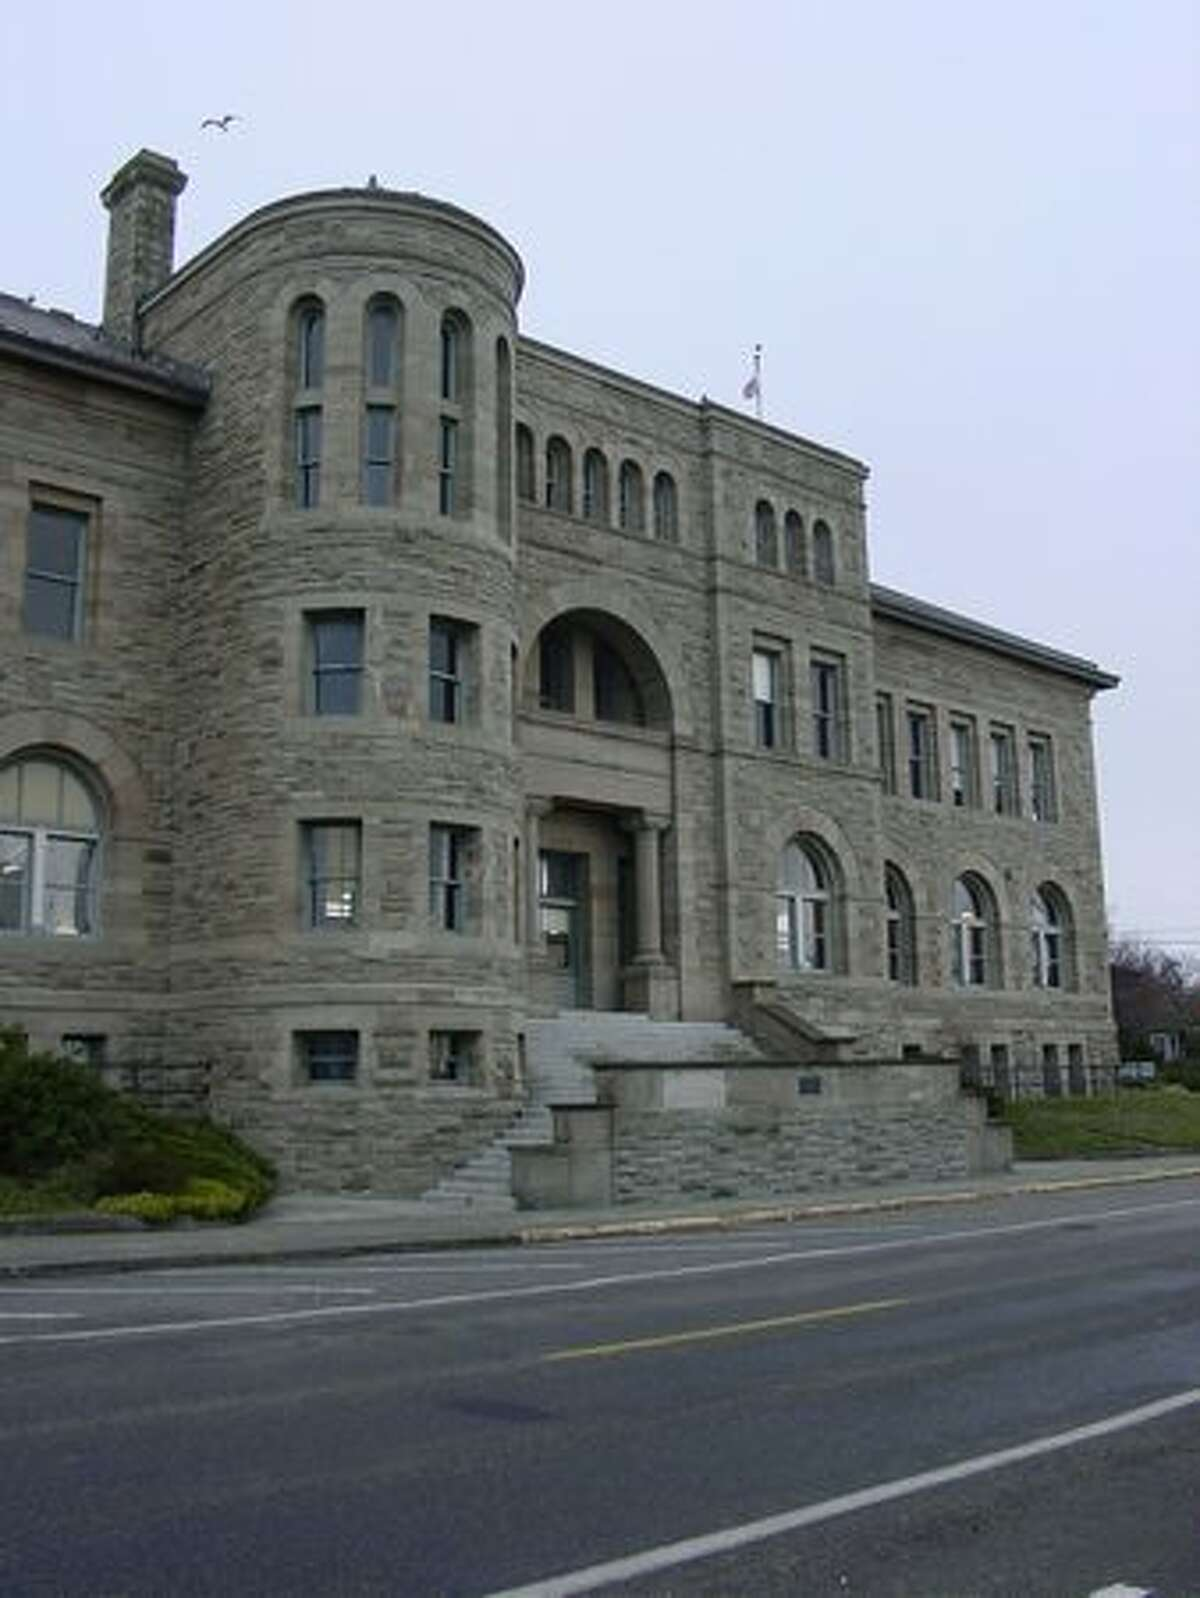 Port Townsend Customs House/Post Office, Port Townsend, WA : The Port Townsend Customs House and Post office is a fine example of Richardsonian Romanesque style, and today the stone building stands unaltered. Built at a time when it was expected that Port Townsend would develop into a major port city, the Customs House has retained its historic form while continuing to provide for the community for over a century. The front entrance facade was used as the